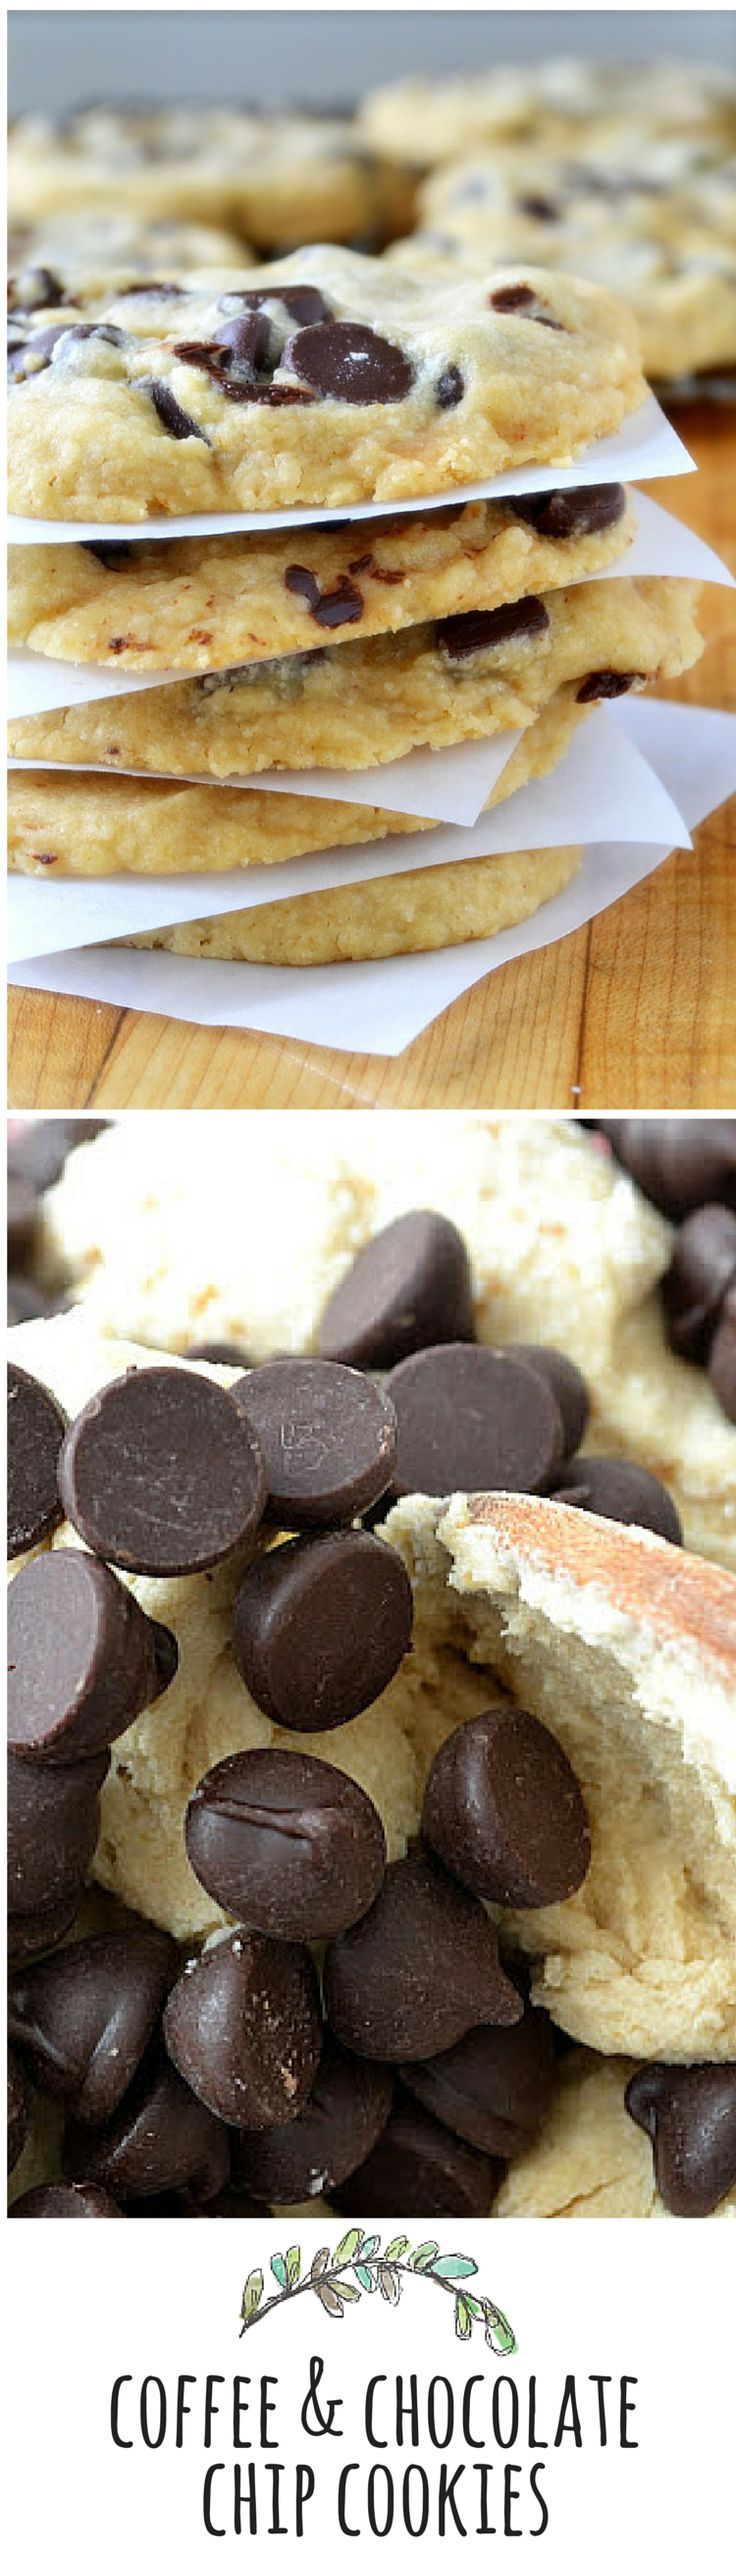 Best 25+ Caffeine chocolate ideas on Pinterest | Chocolate chip ...